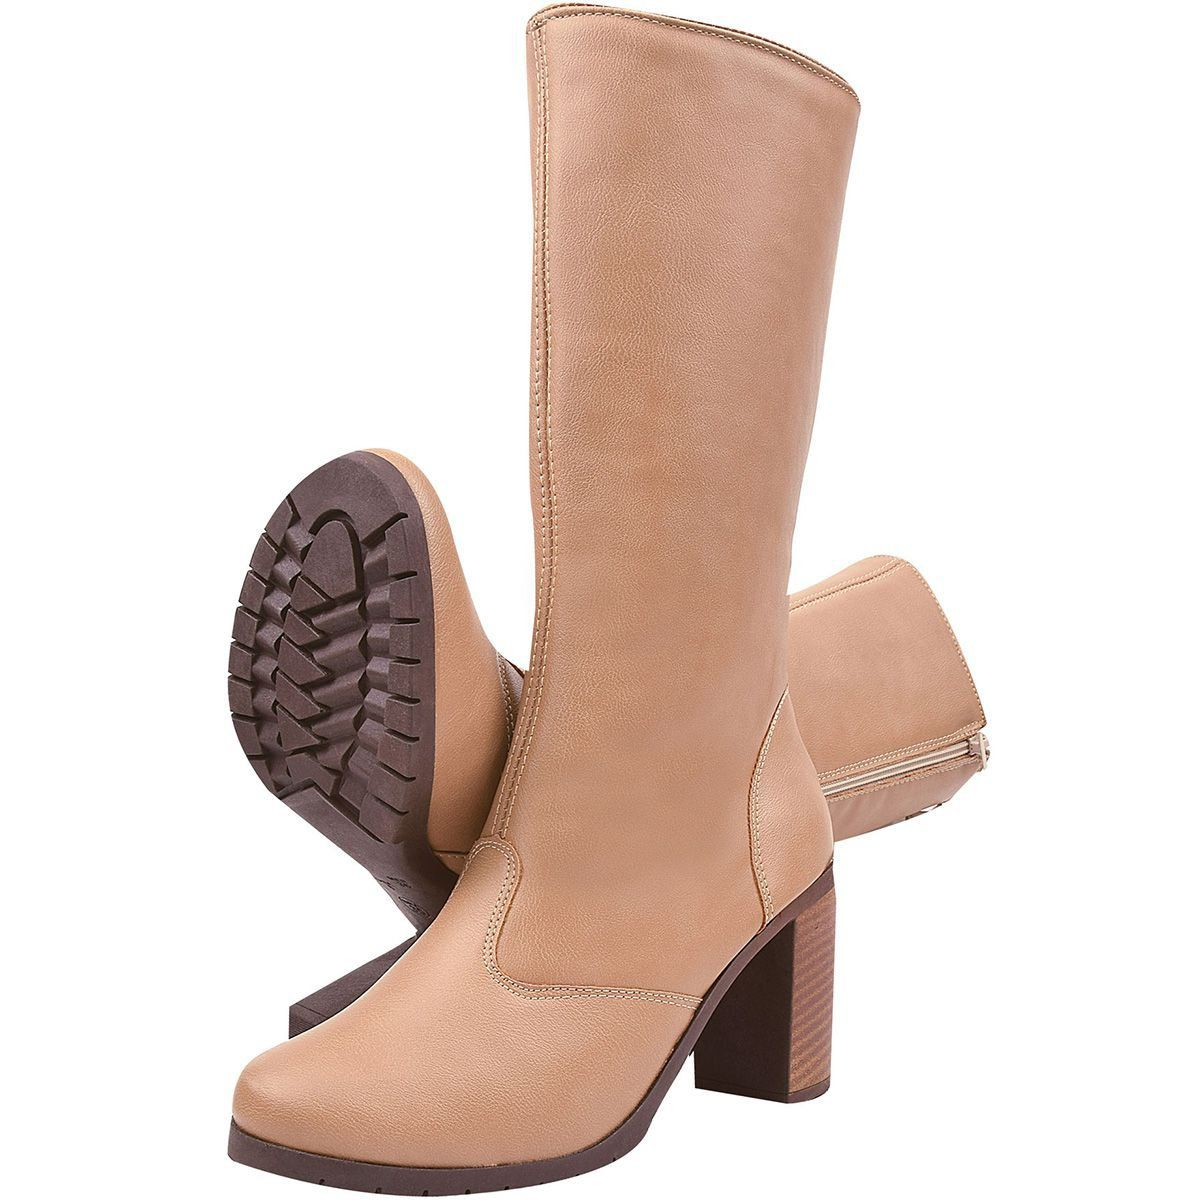 Bota Chiquiteira Salto Alto Cano Alto Light Tan SP